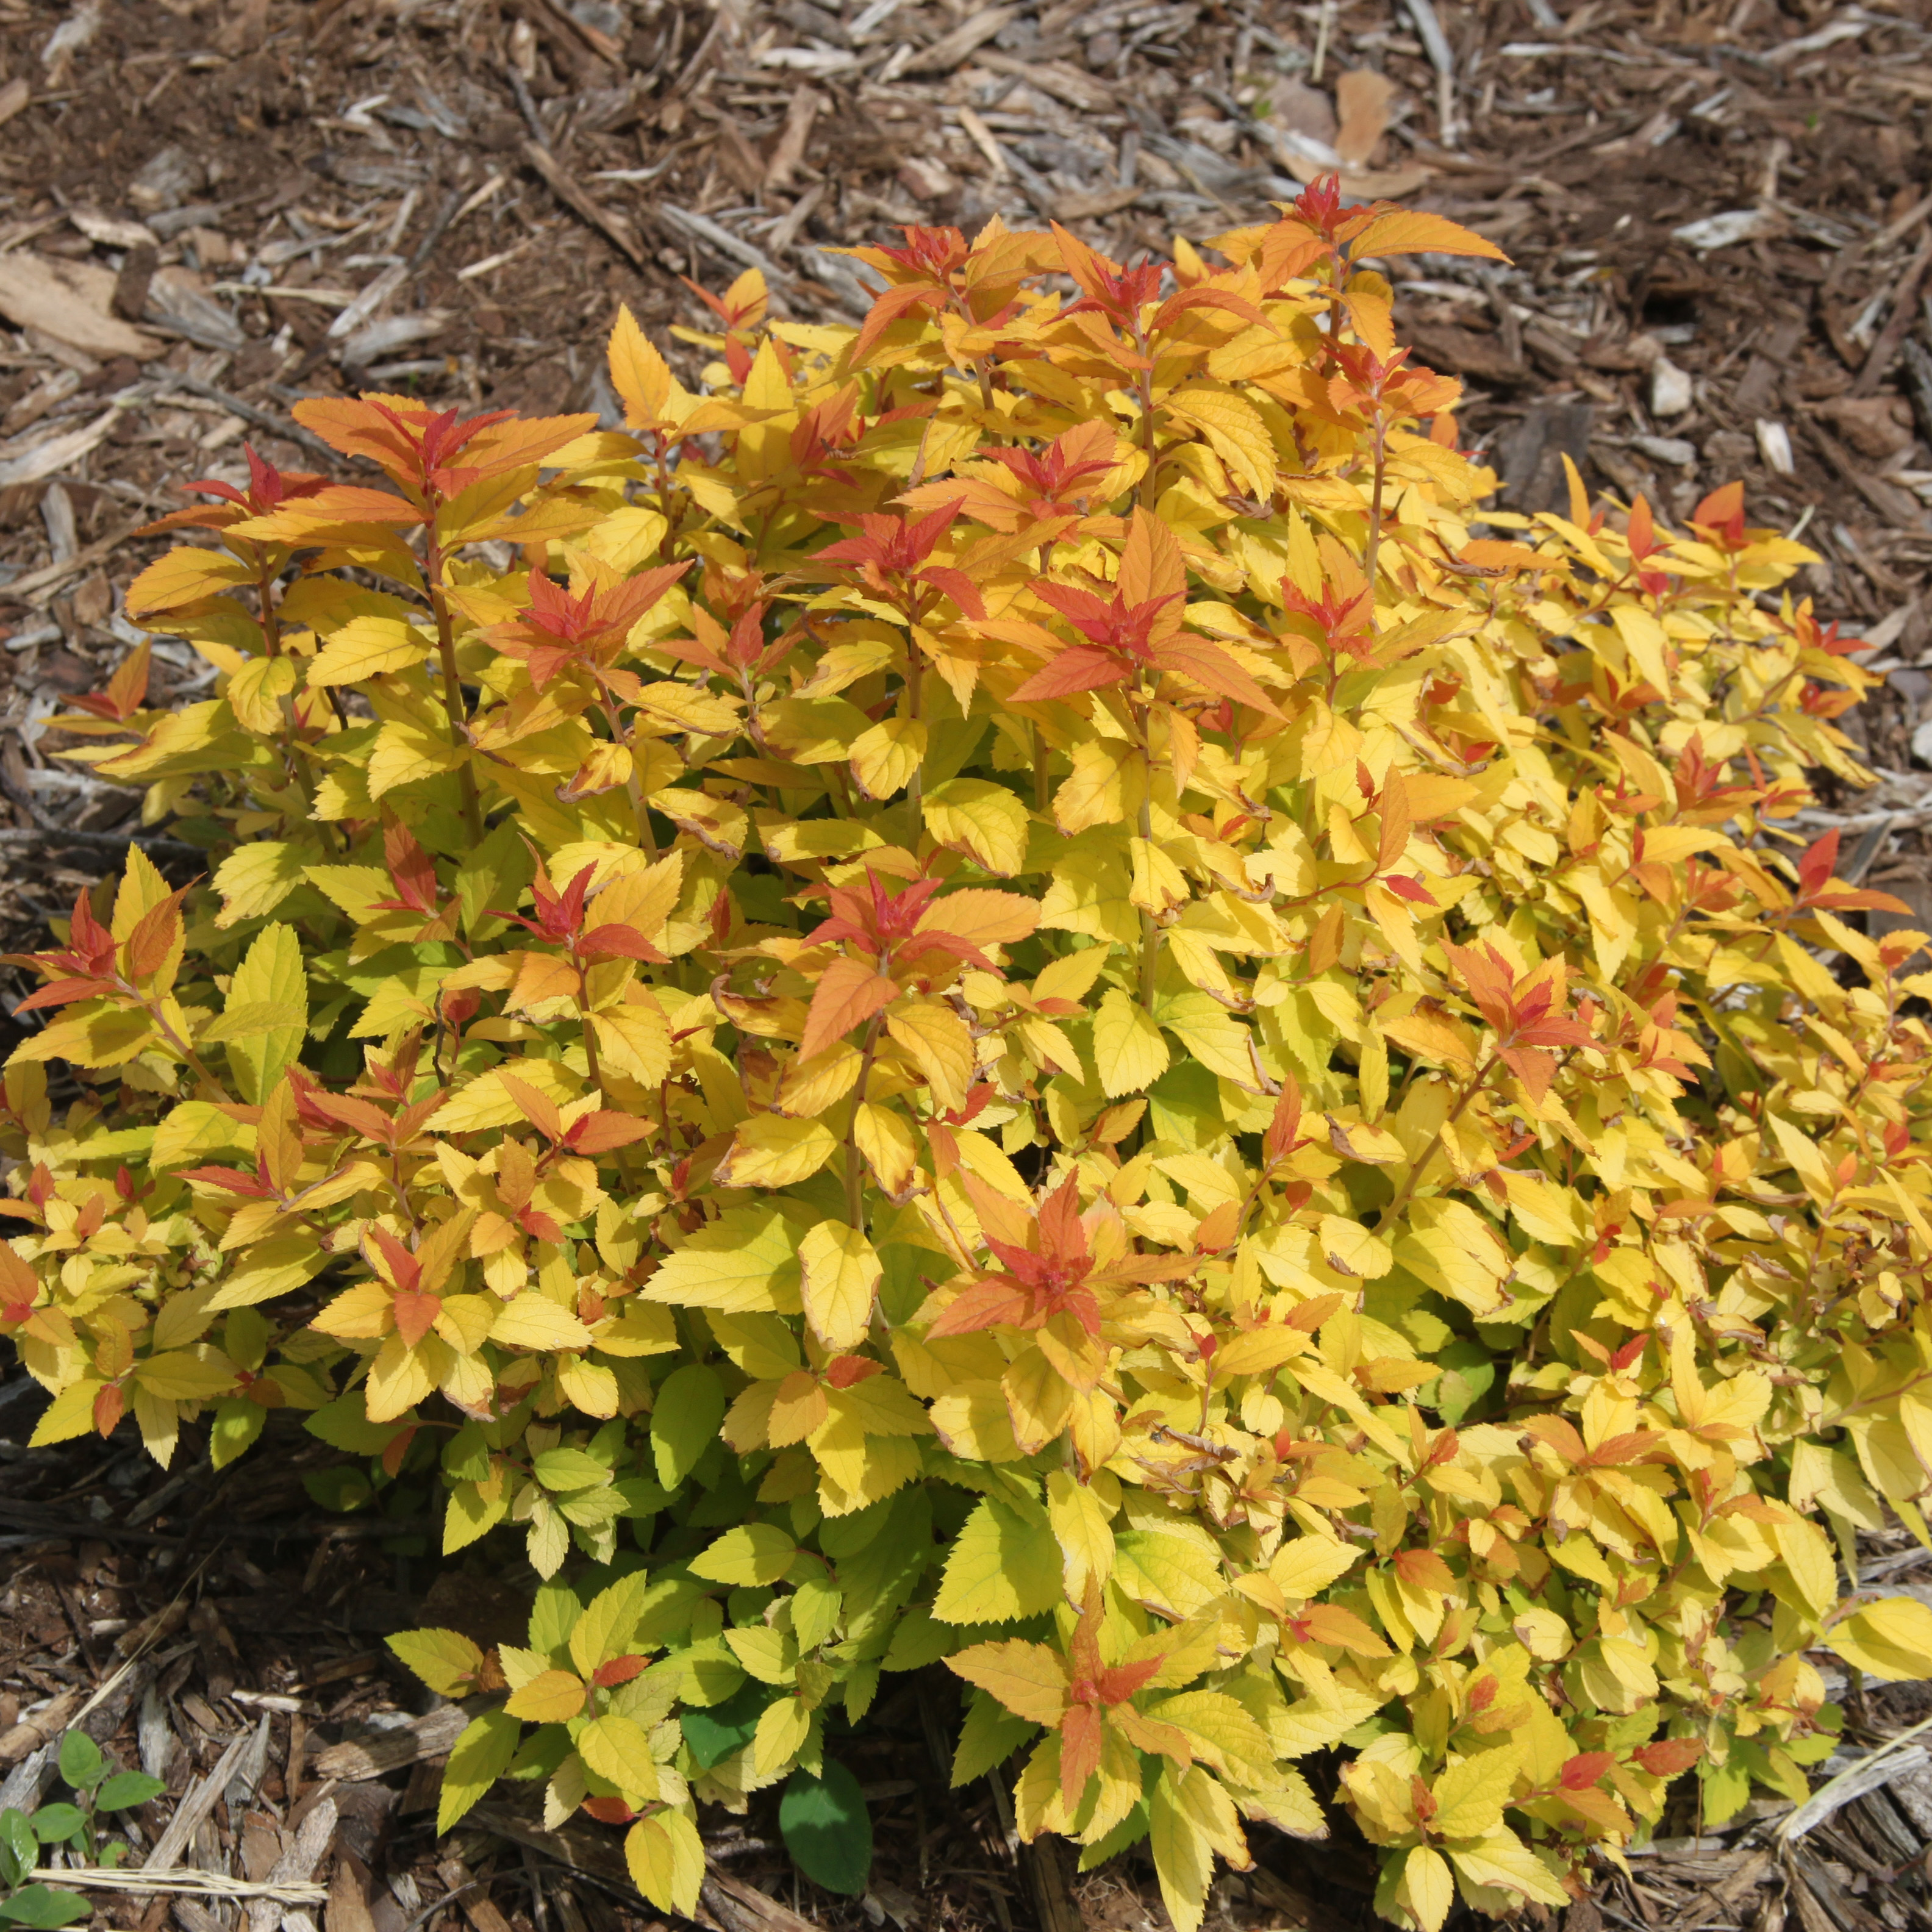 Cheerful Candy Play Spiraea Pot Proven Winners Gardens Candy Play Spiraea Pot Proven Winners Candy Corn Plant Habitat Candy Corn Plant Wikipedia houzz 01 Candy Corn Plant